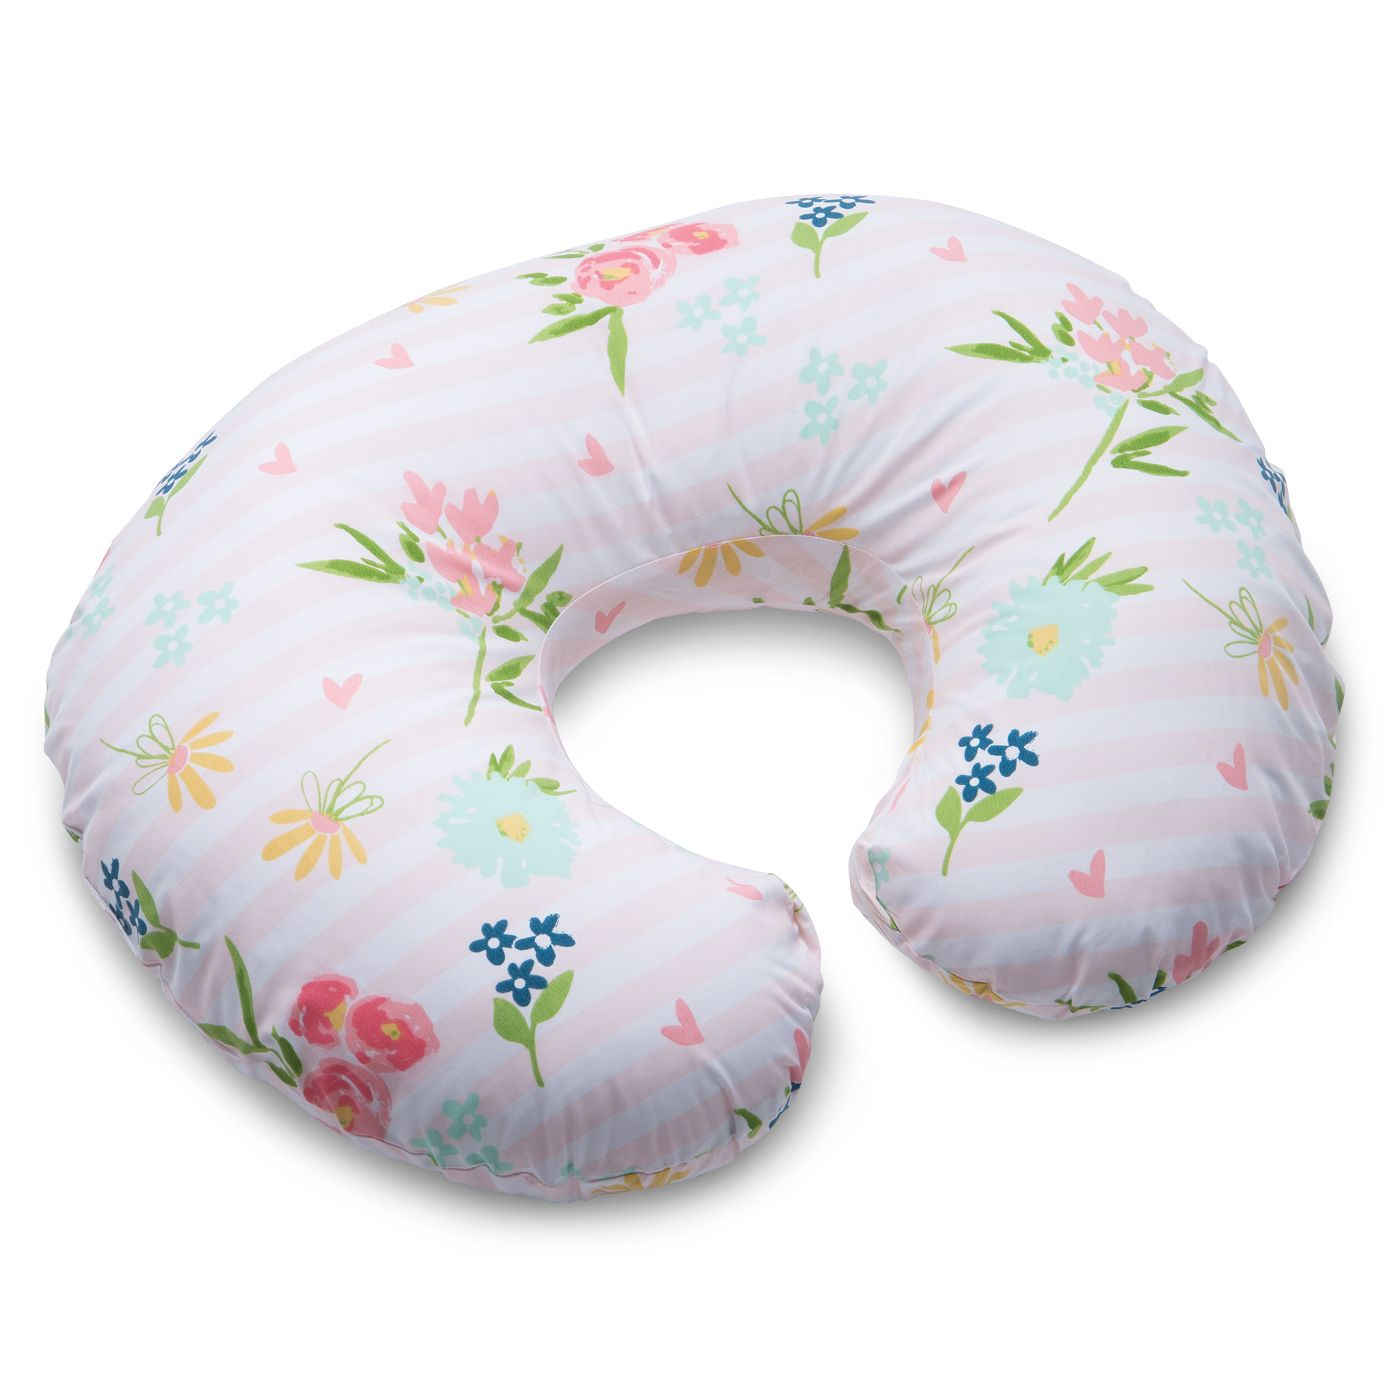 Boppy Floral Stripe Nursing Pillow and Positioner - Pink - image 1 of 15